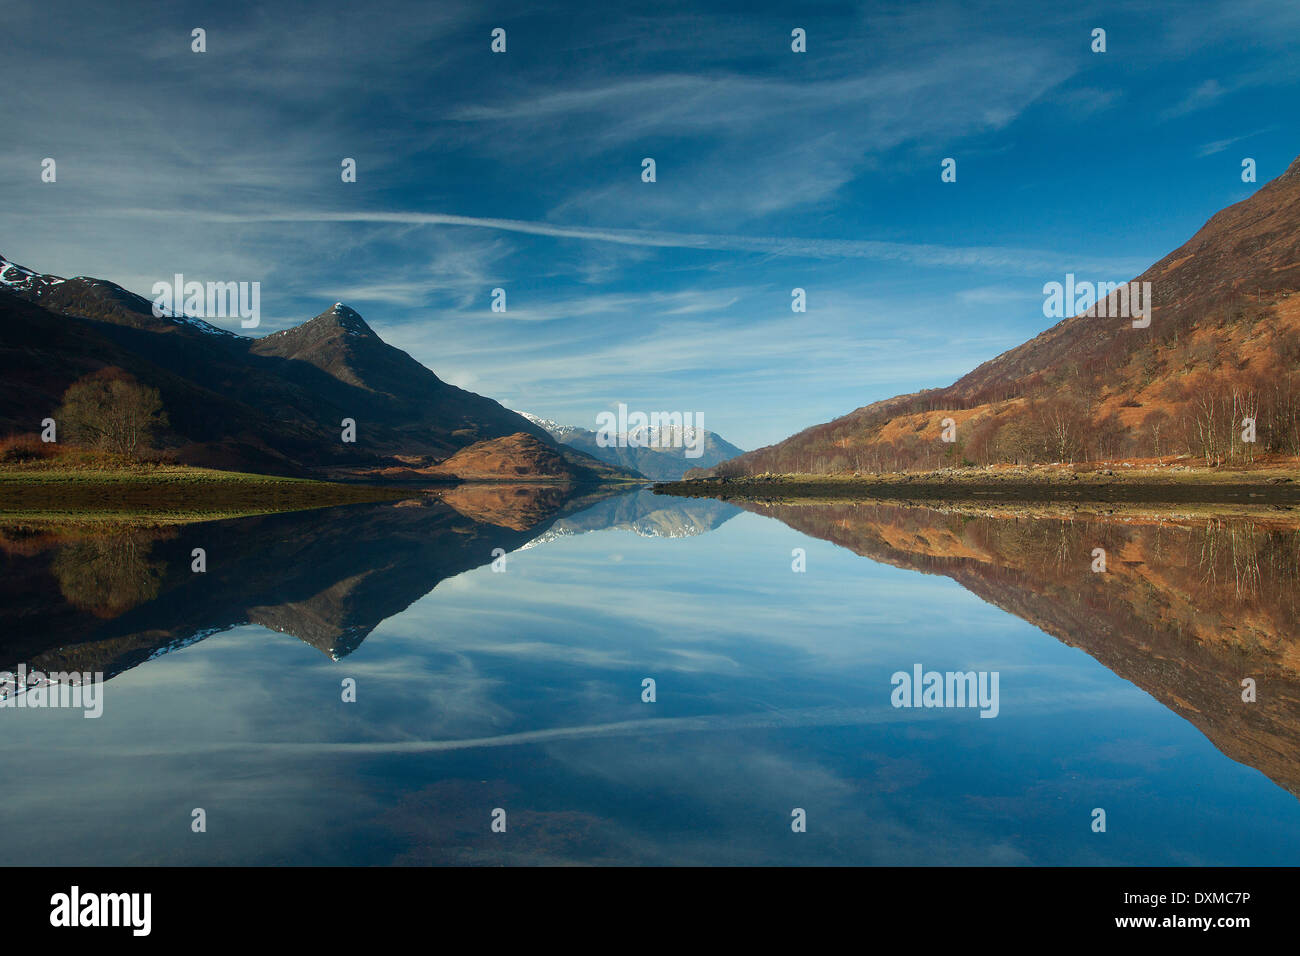 Loch Leven and Sgorr na Ciche from near Kinlochleven, Lochaber - Stock Image